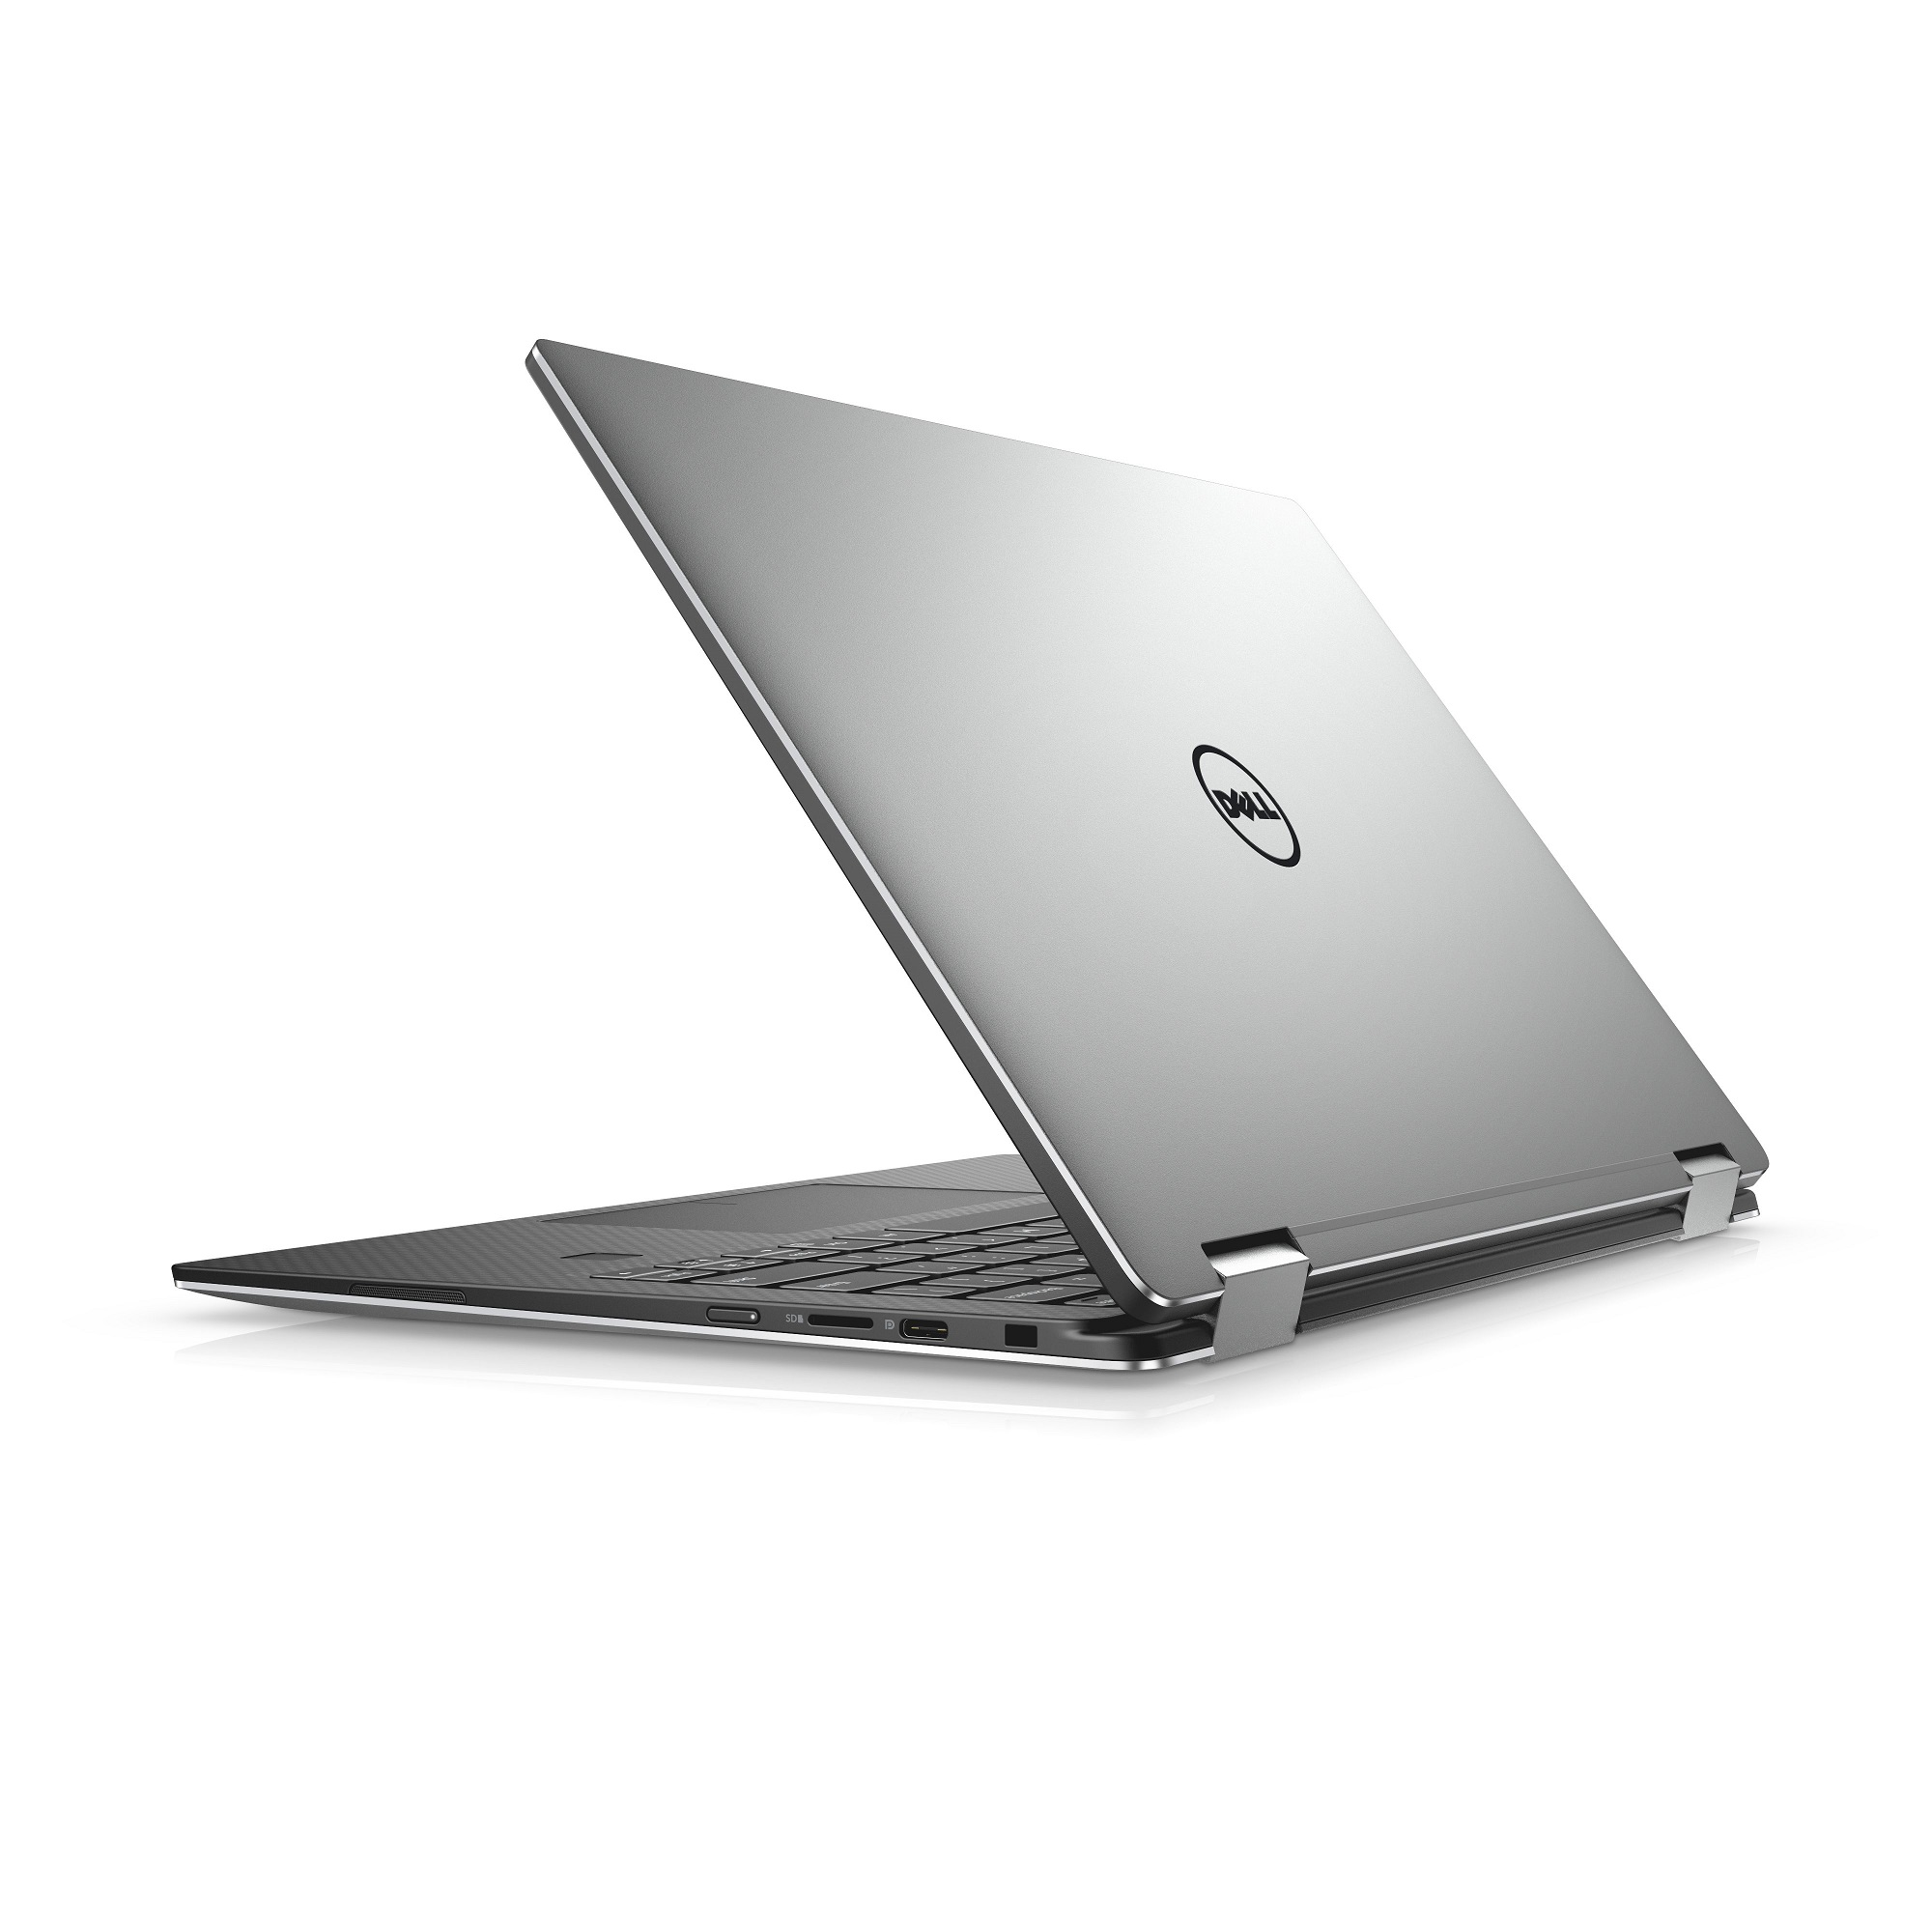 "DELL Ultrabook XPS 13 (9365)/i7-7Y75/8GB/256GB SSD/Intel HD/13.3"" FHD Touch/Win 10 Pro/Black"